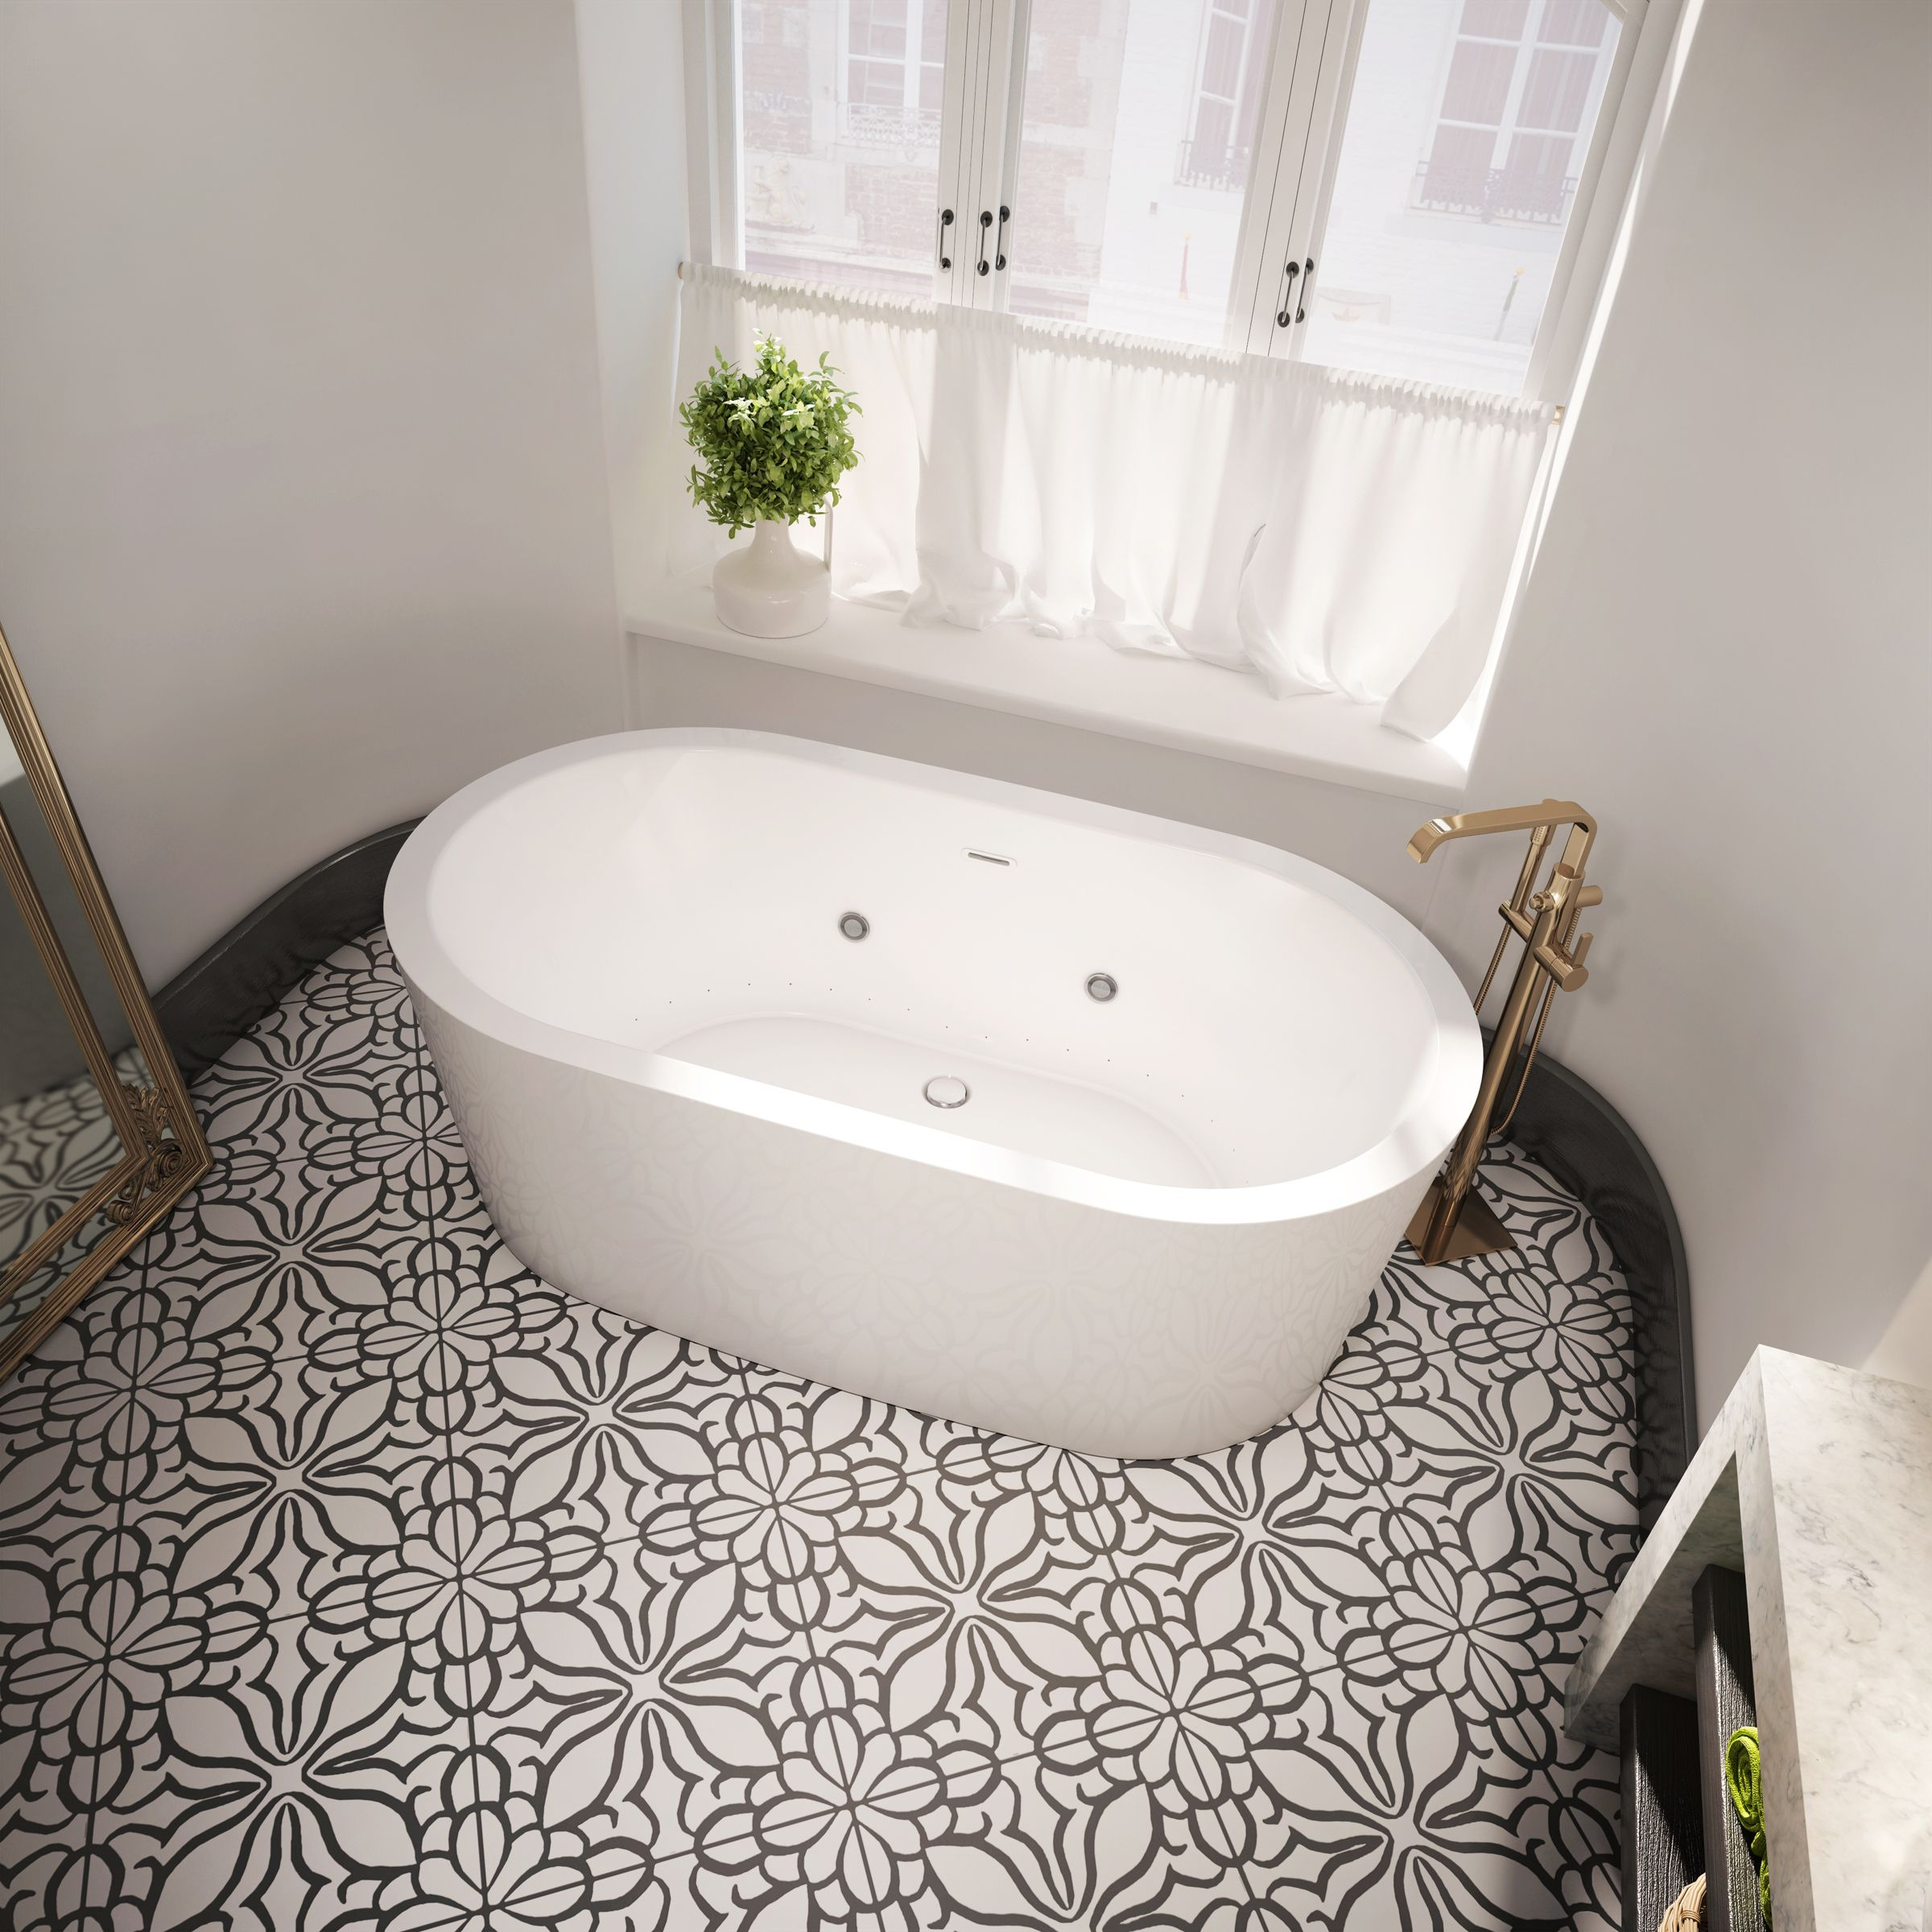 Brand new, our Nokori Oval freestanding bathtub is perfect for ...